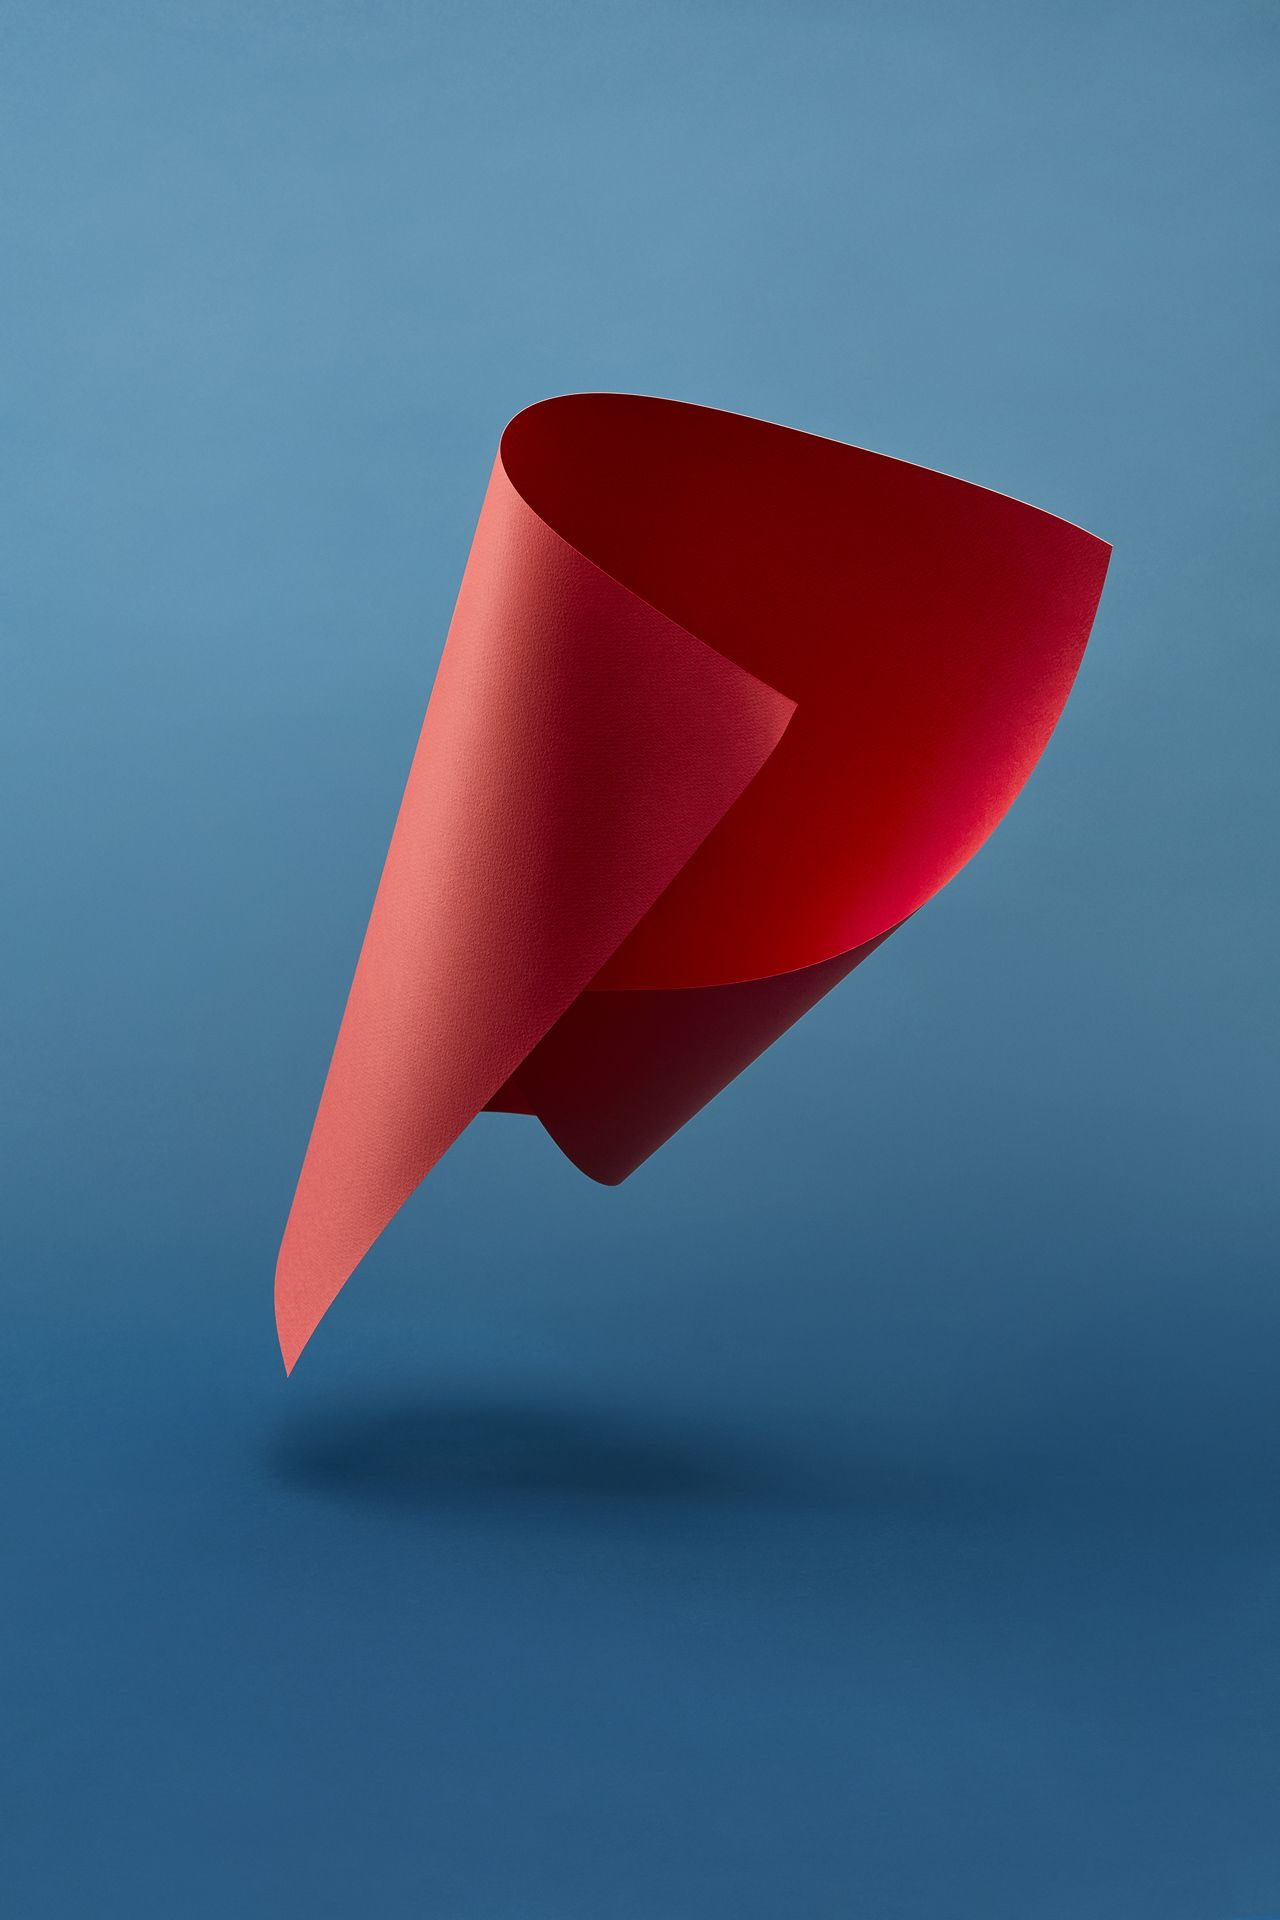 twisted sheet of red paper floating in the air on blue background by Mathieu Levesque for enRoute